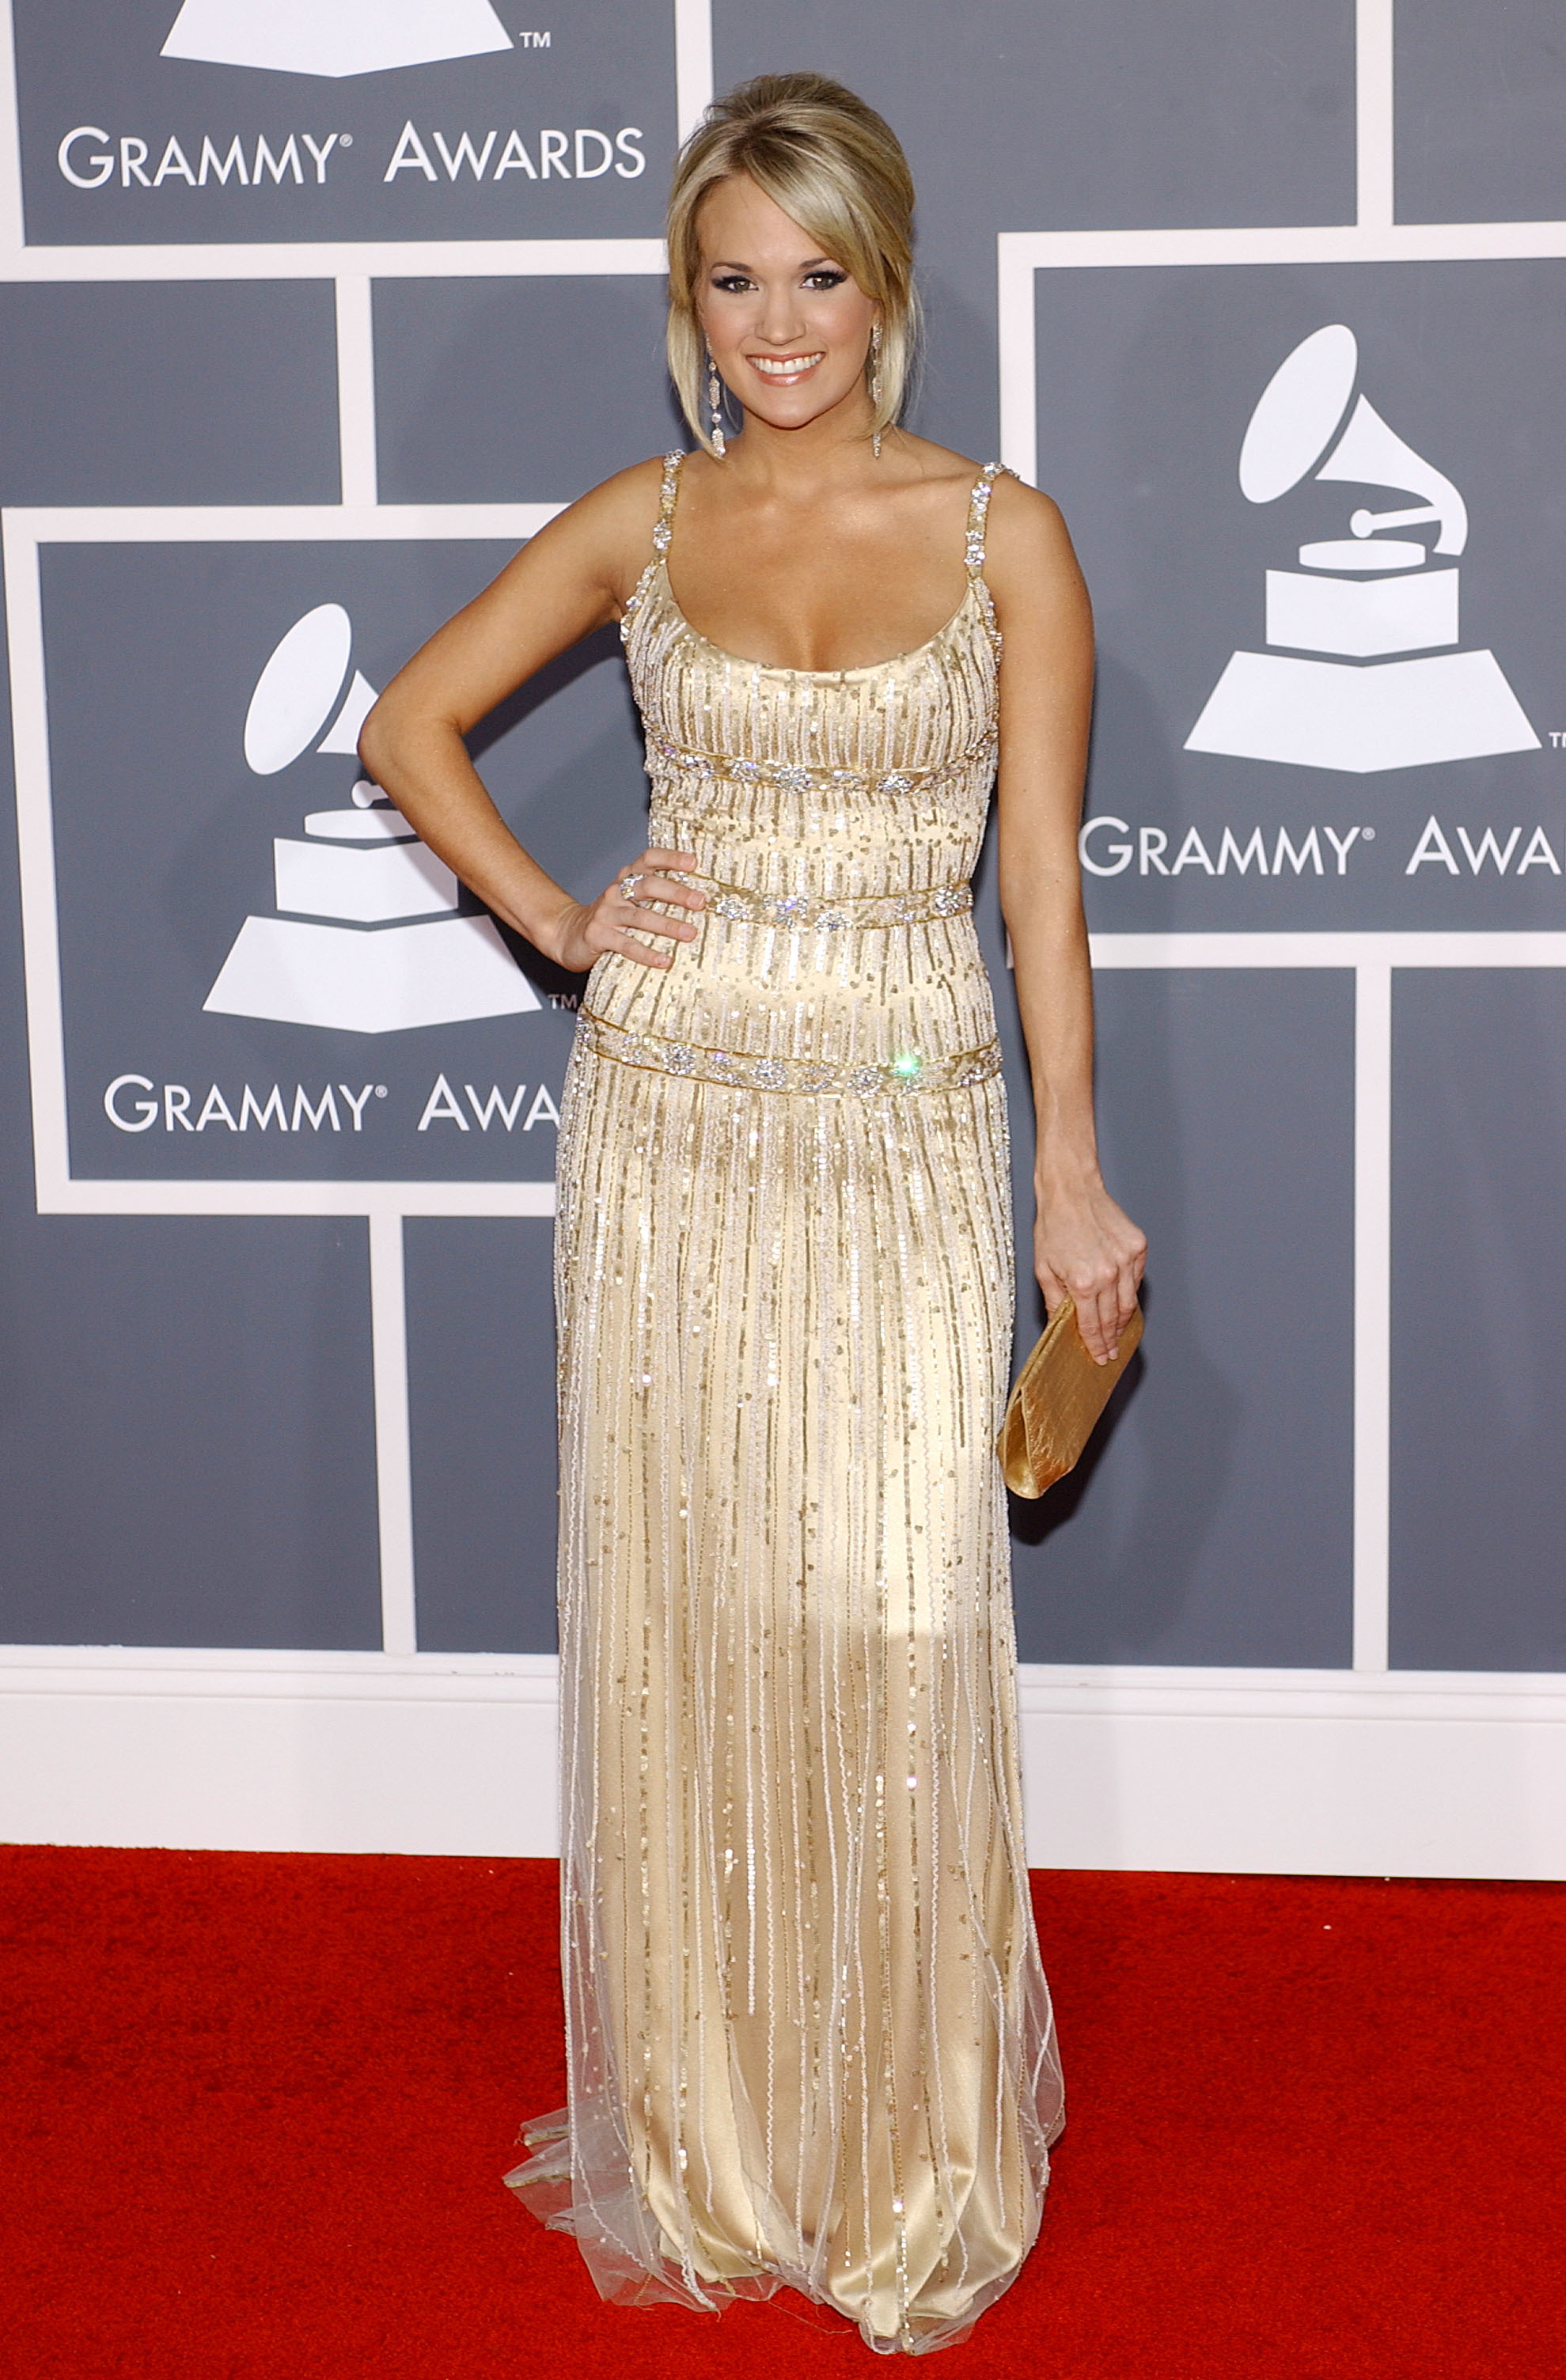 Carrie Underwood arrives at the 51st Annual Grammy Awards at the Staples Center in Los Angeles on Feb. 8, 2009.